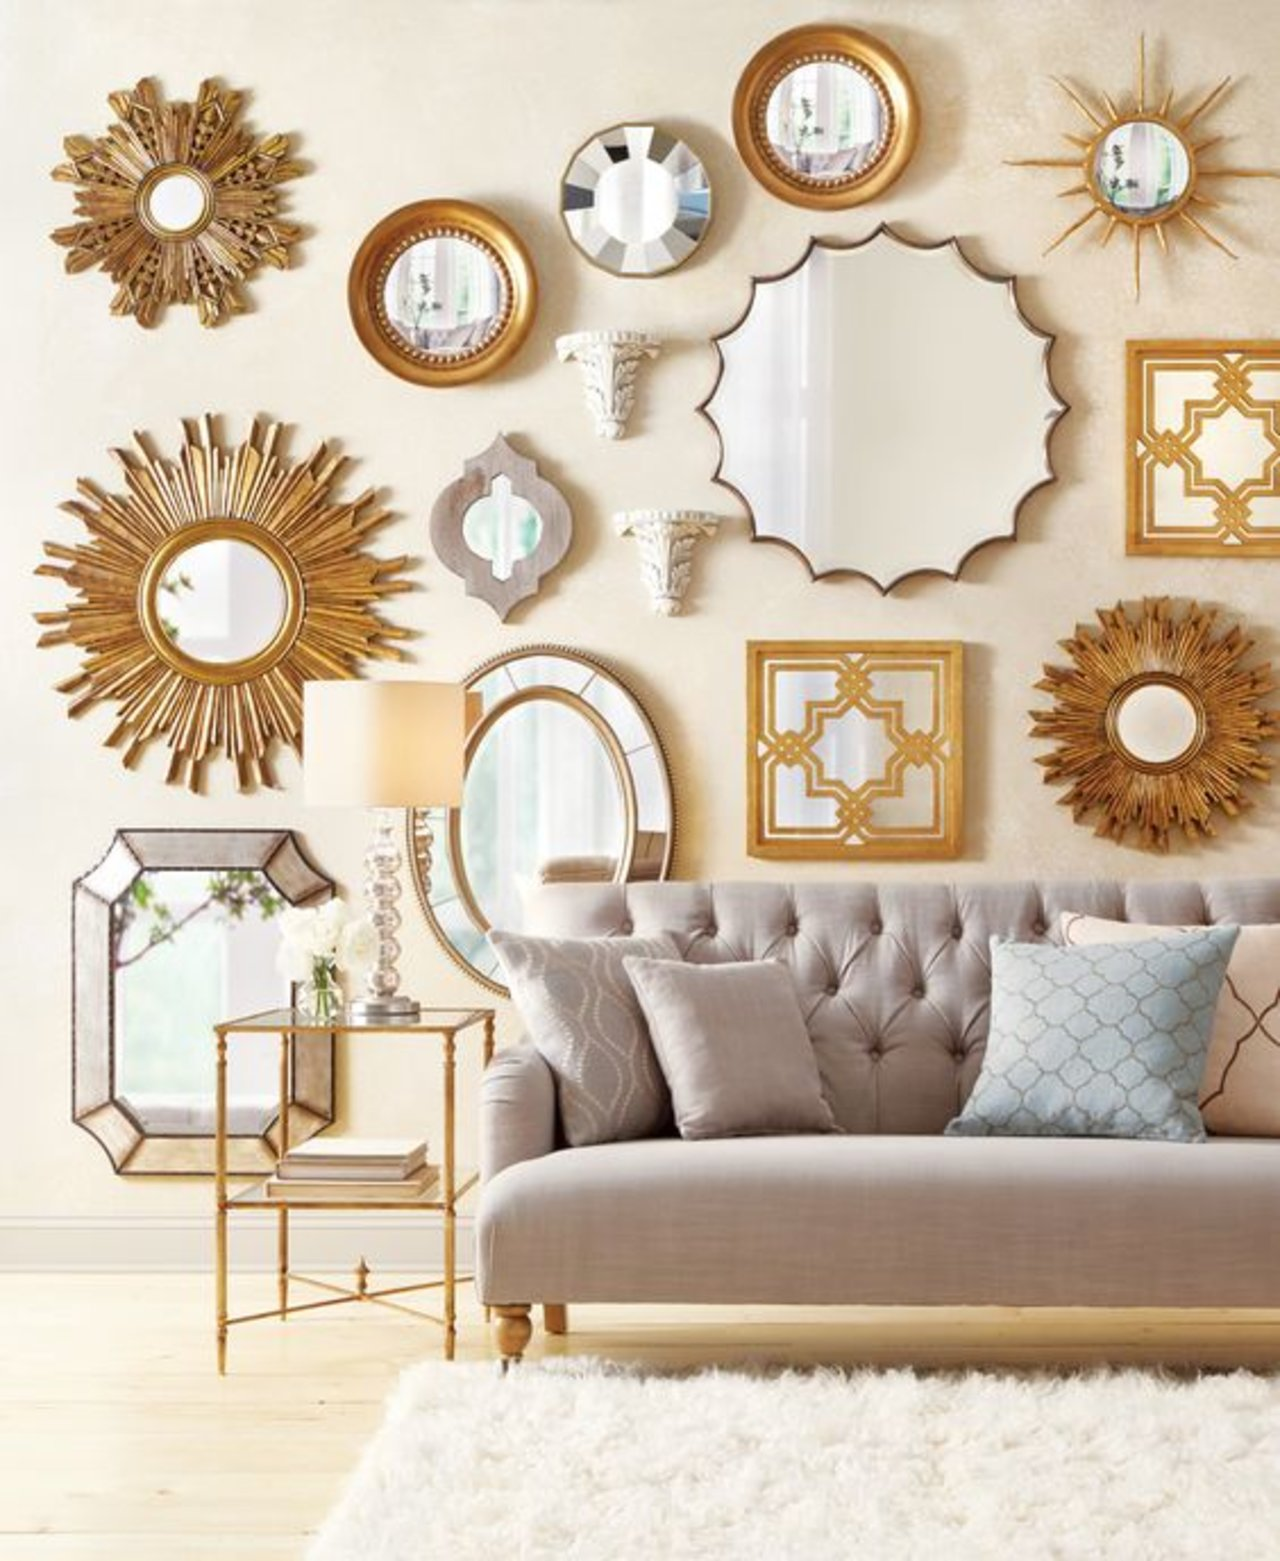 Mirror Decoration Wall Decor 10 Best Mirror Decorating Ideas For Your Room